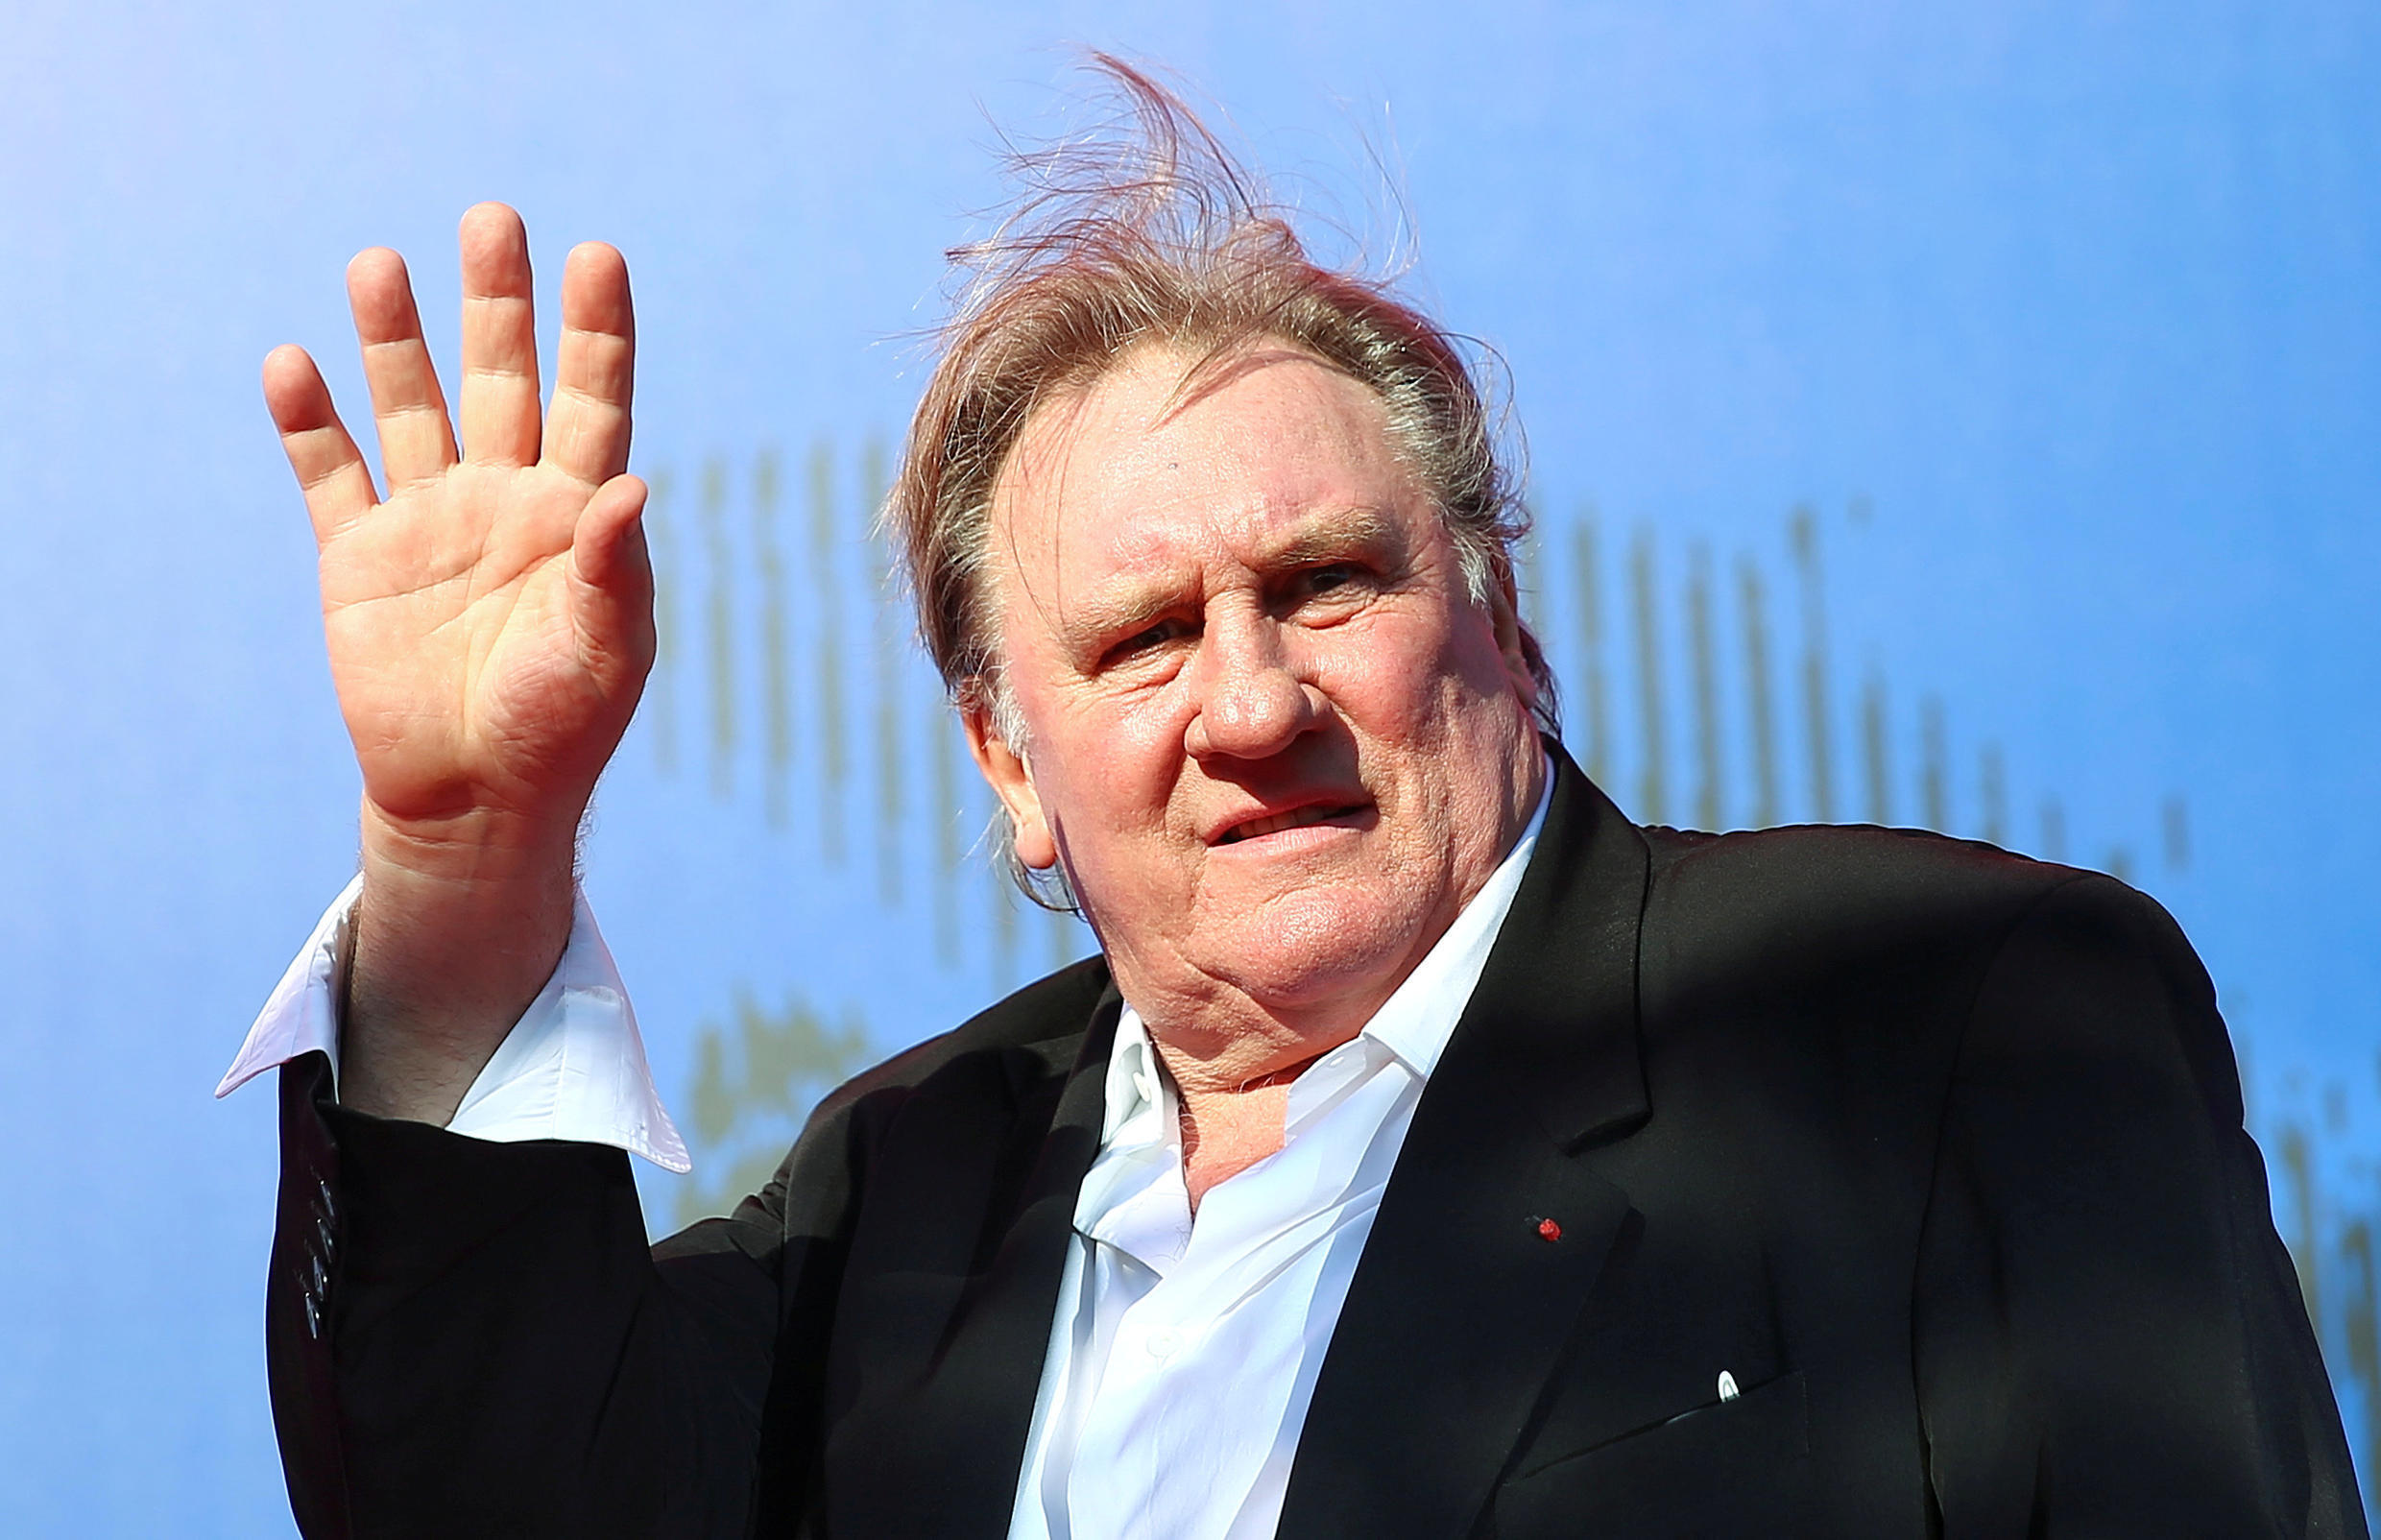 """Gerard Depardieu waves as he arrives during a red carpet event for the movie """"Novecento- Atto Primo"""" at the 74th Venice Film Festival in Venice, Italy, Italy September 5, 2017."""